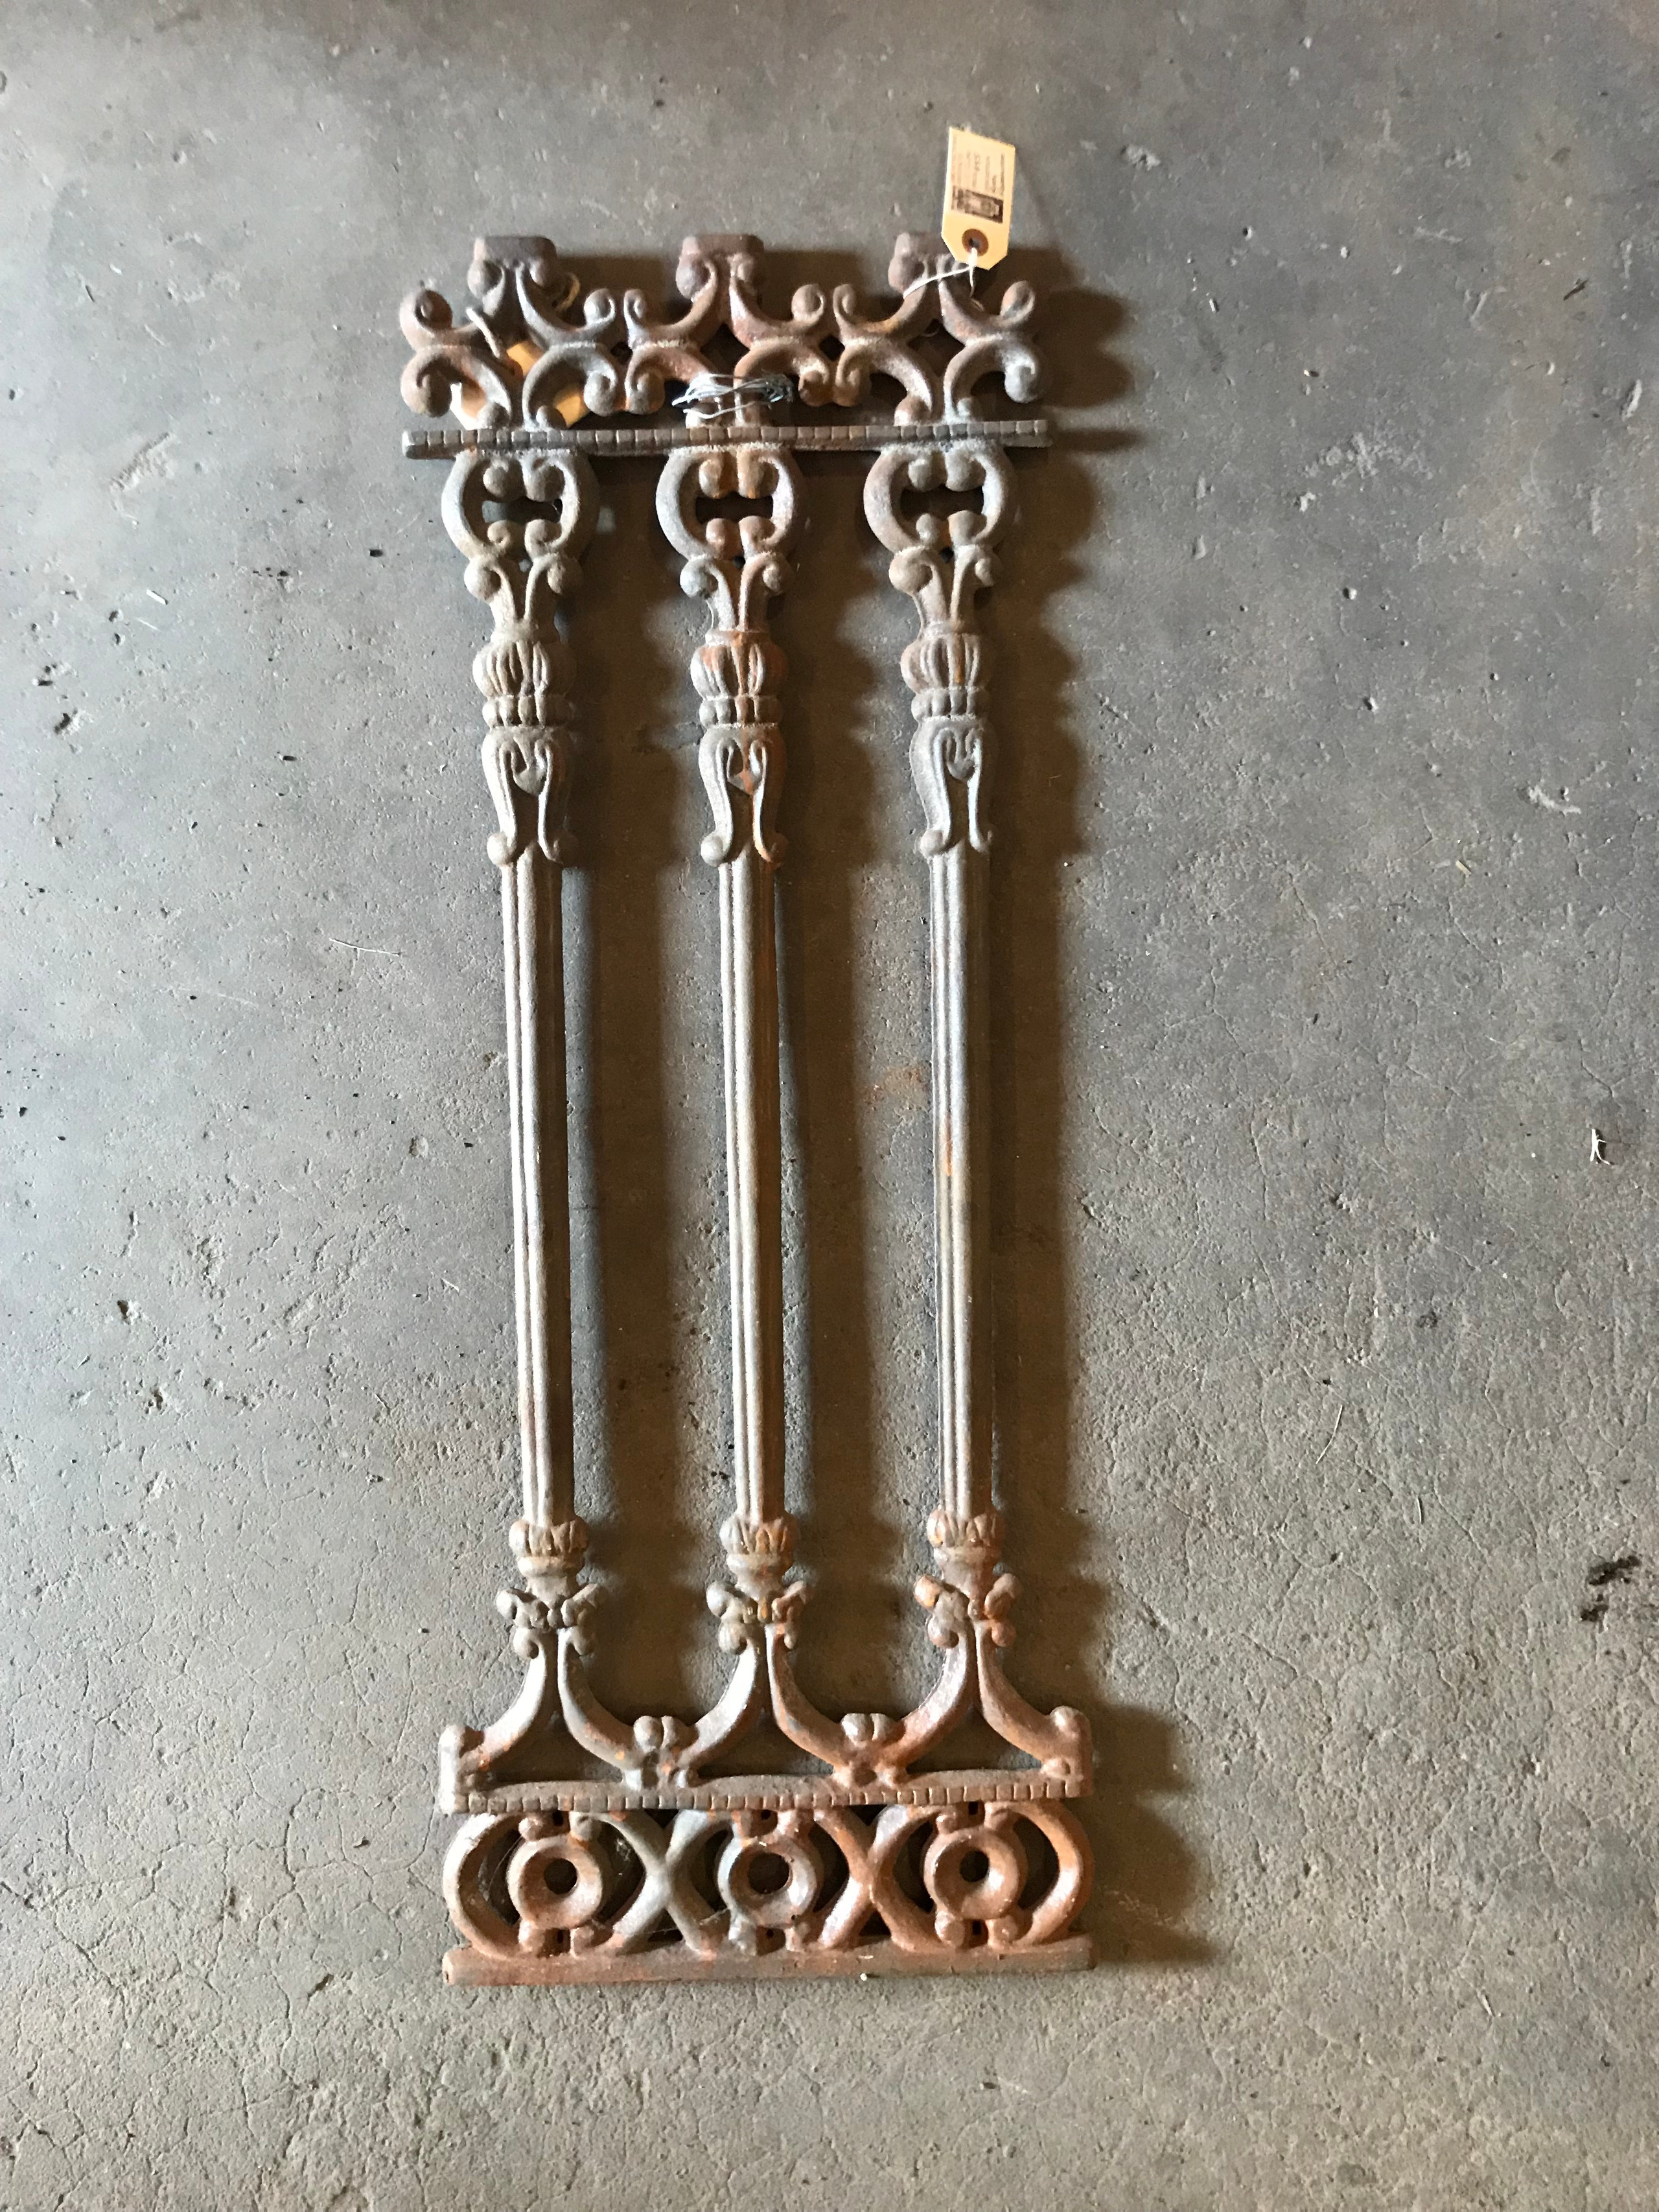 cast iron replica with three shafts for a fence row.